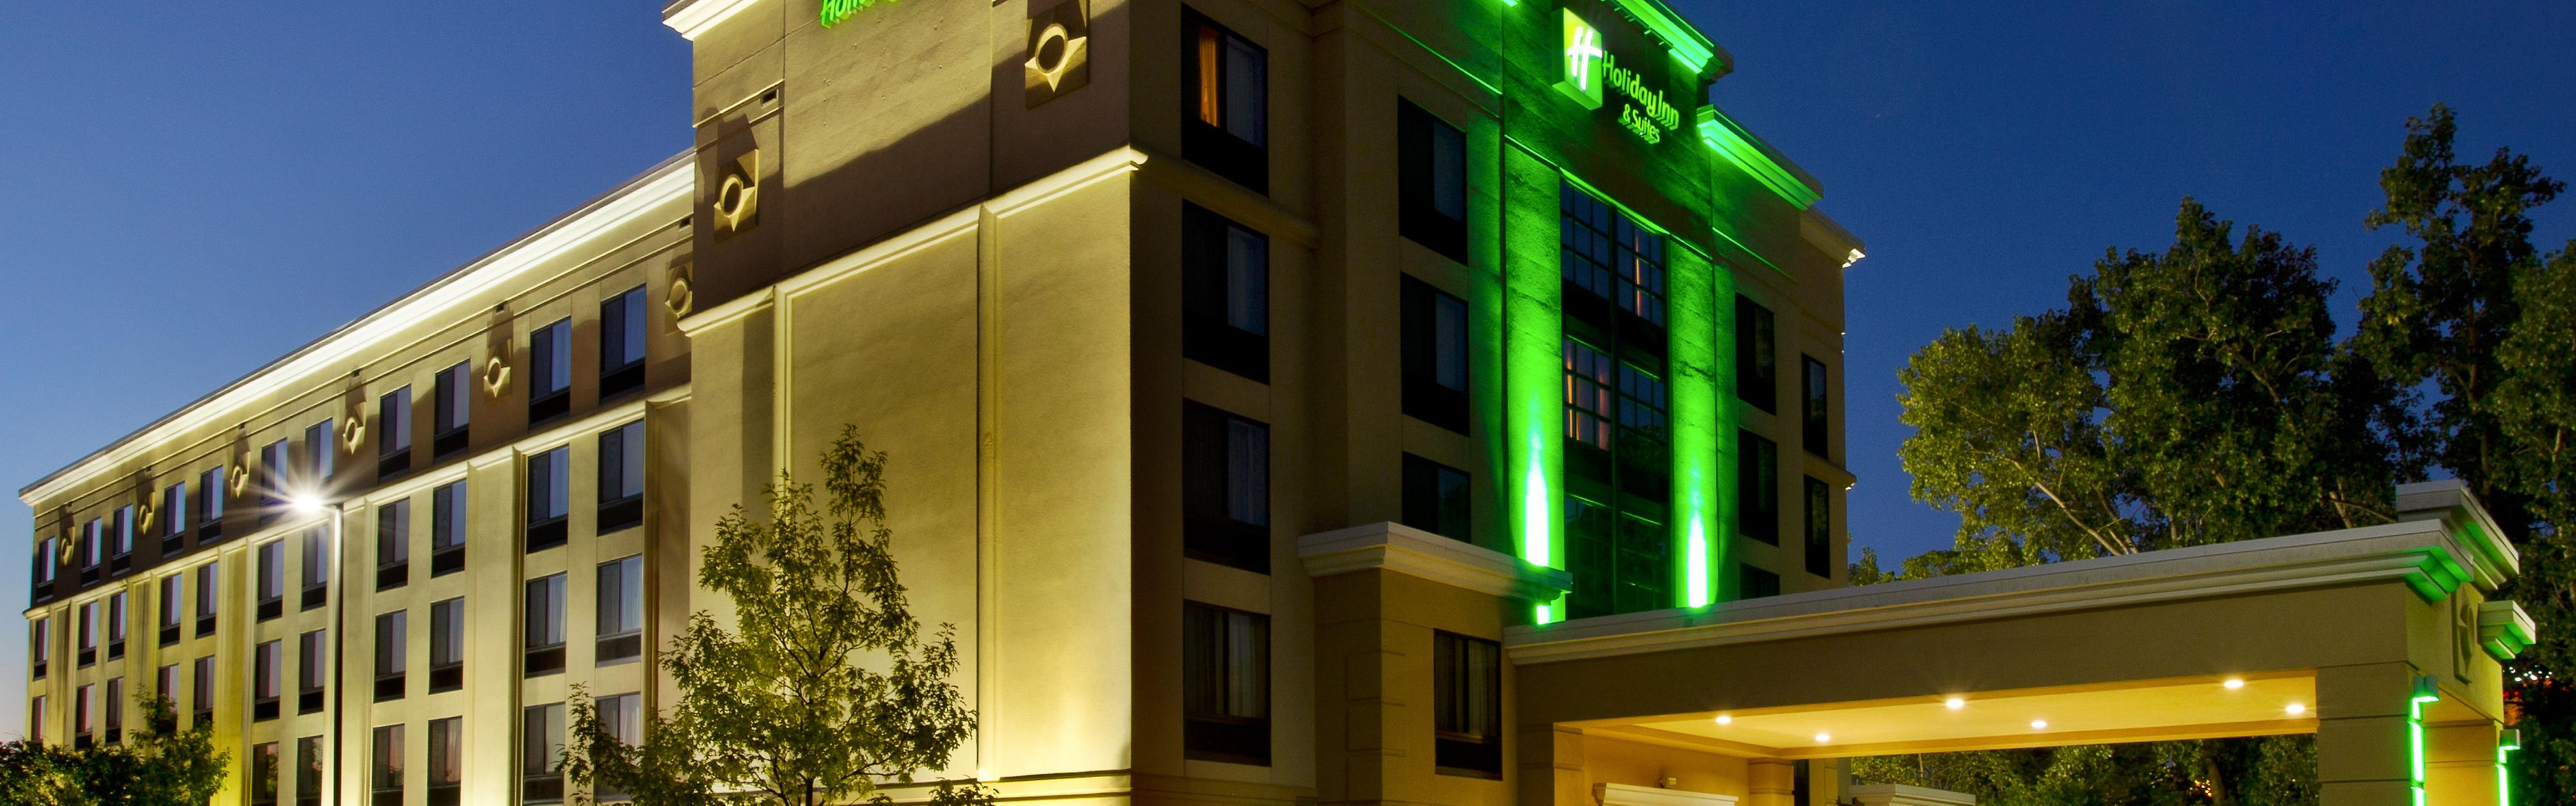 Free Lobby Entrance Front Desk Hotel Exterior Nightime With Hotels Near Briarwood Mall Ann Arbor